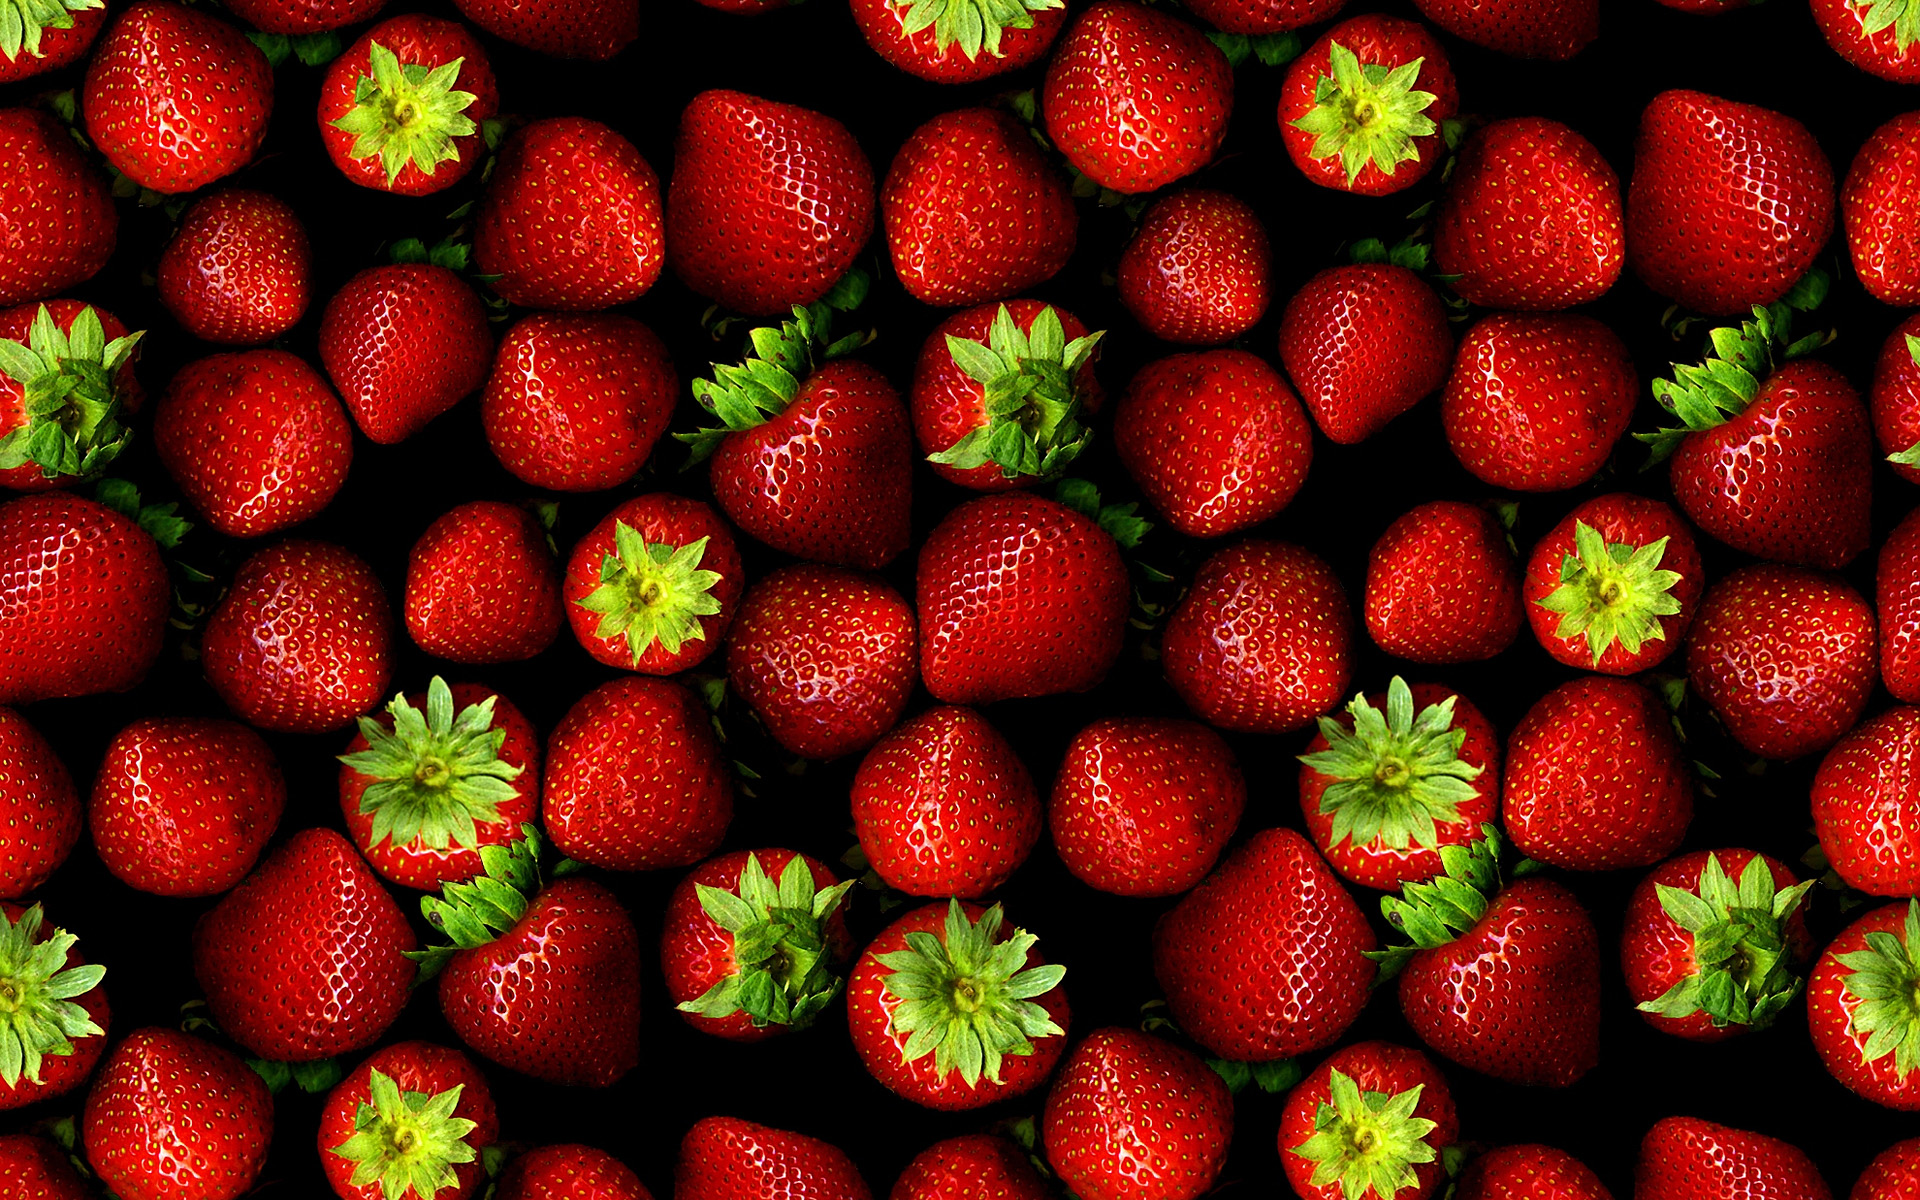 click to free download the wallpaper--Creative Wallpaper - A Pile of Strawberries in the Same Size and Color, They Are Too Good to be True 1920X1200 free wallpaper download